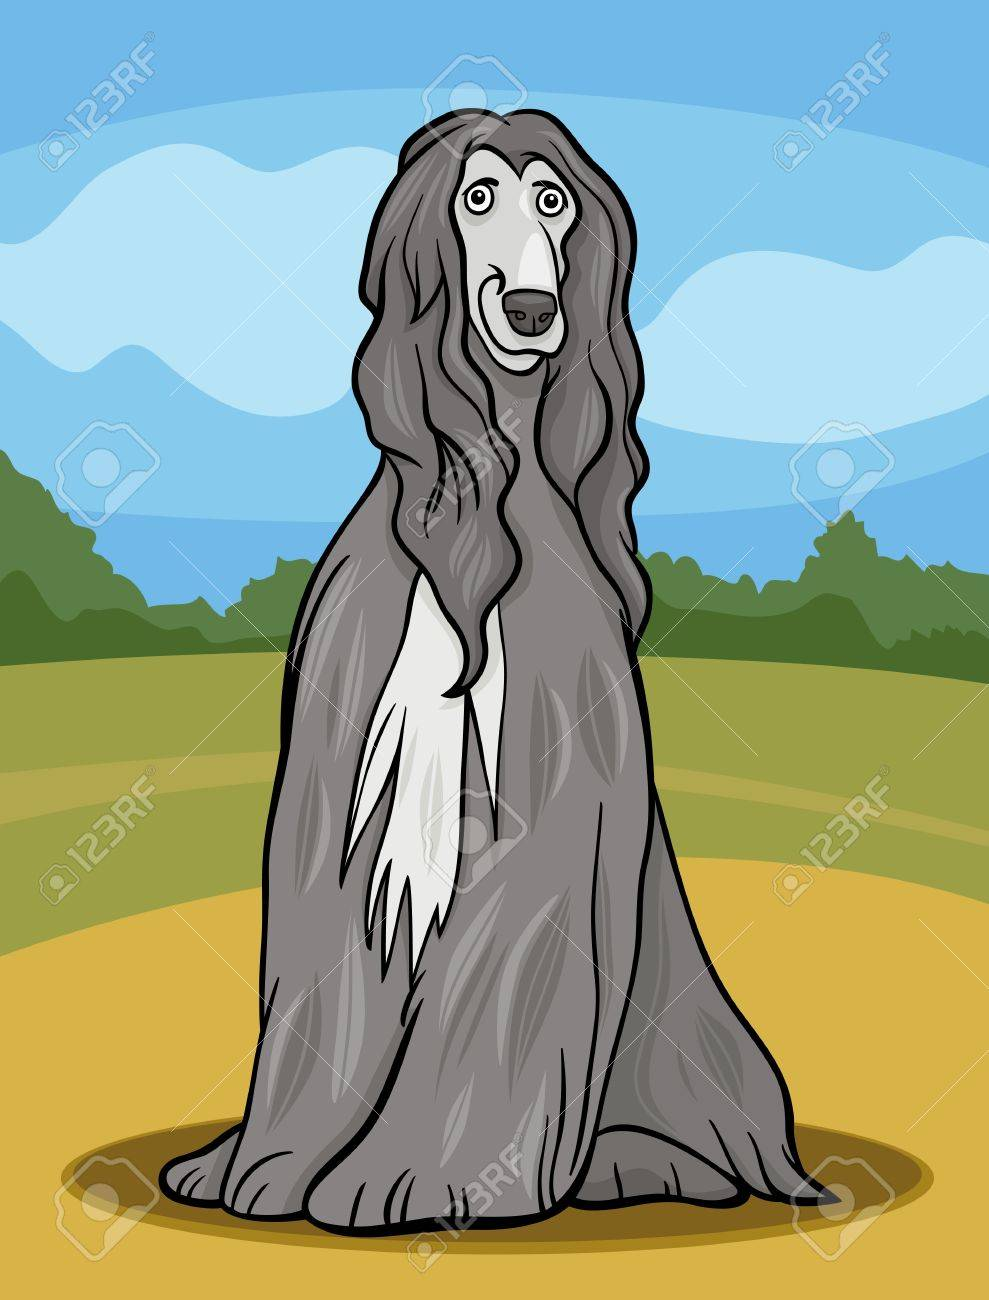 Cartoon Illustration of Cute Afghan Hound Purebred Dog and Rural Landscape Stock Vector - 19087110